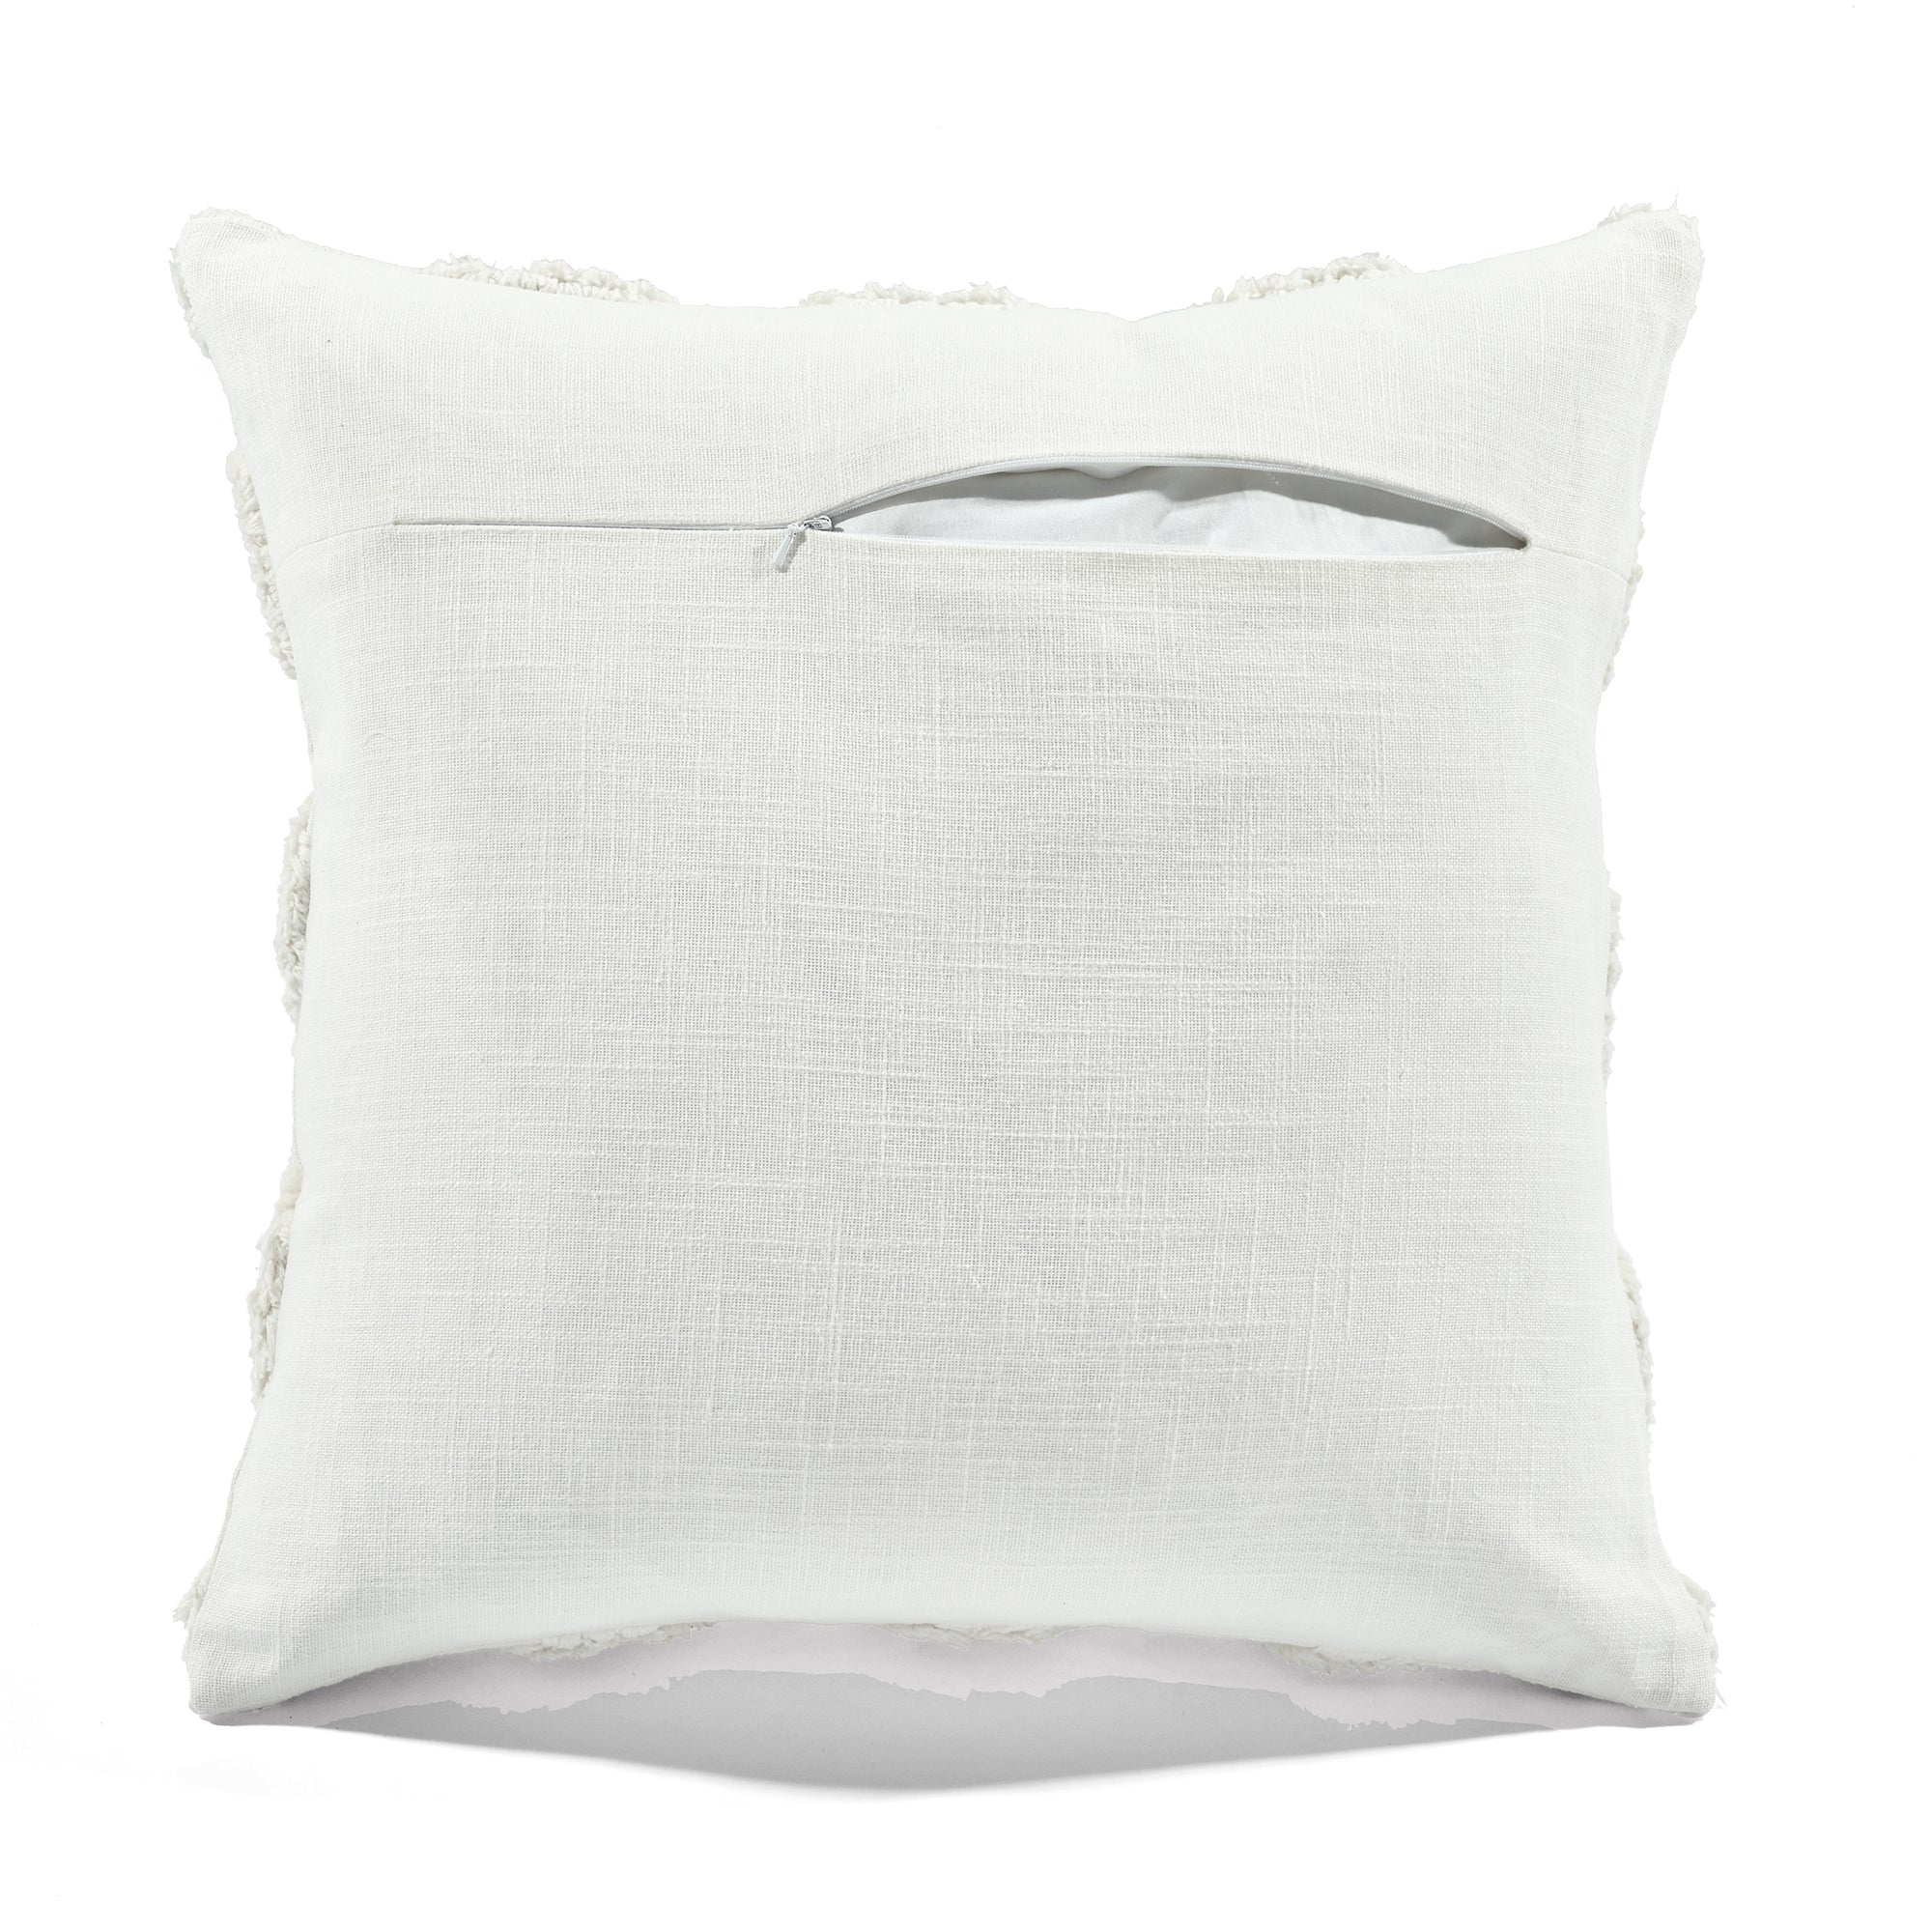 Tufted Diagonal Decorative Pillow Cover